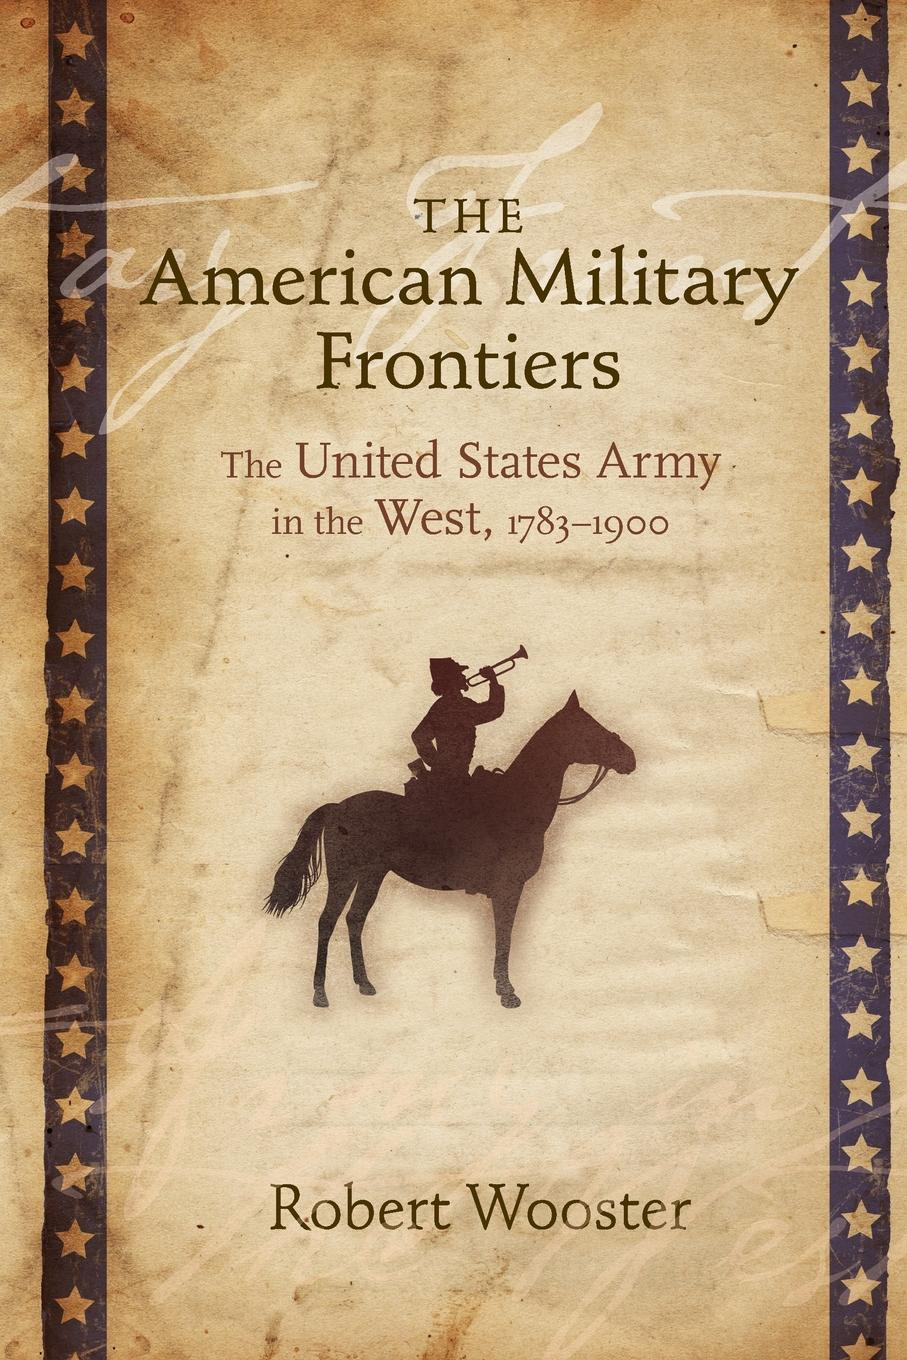 Robert Wooster American Military Frontiers. The United States Army in the West, 1783-1900 timothy henderson j beyond borders a history of mexican migration to the united states